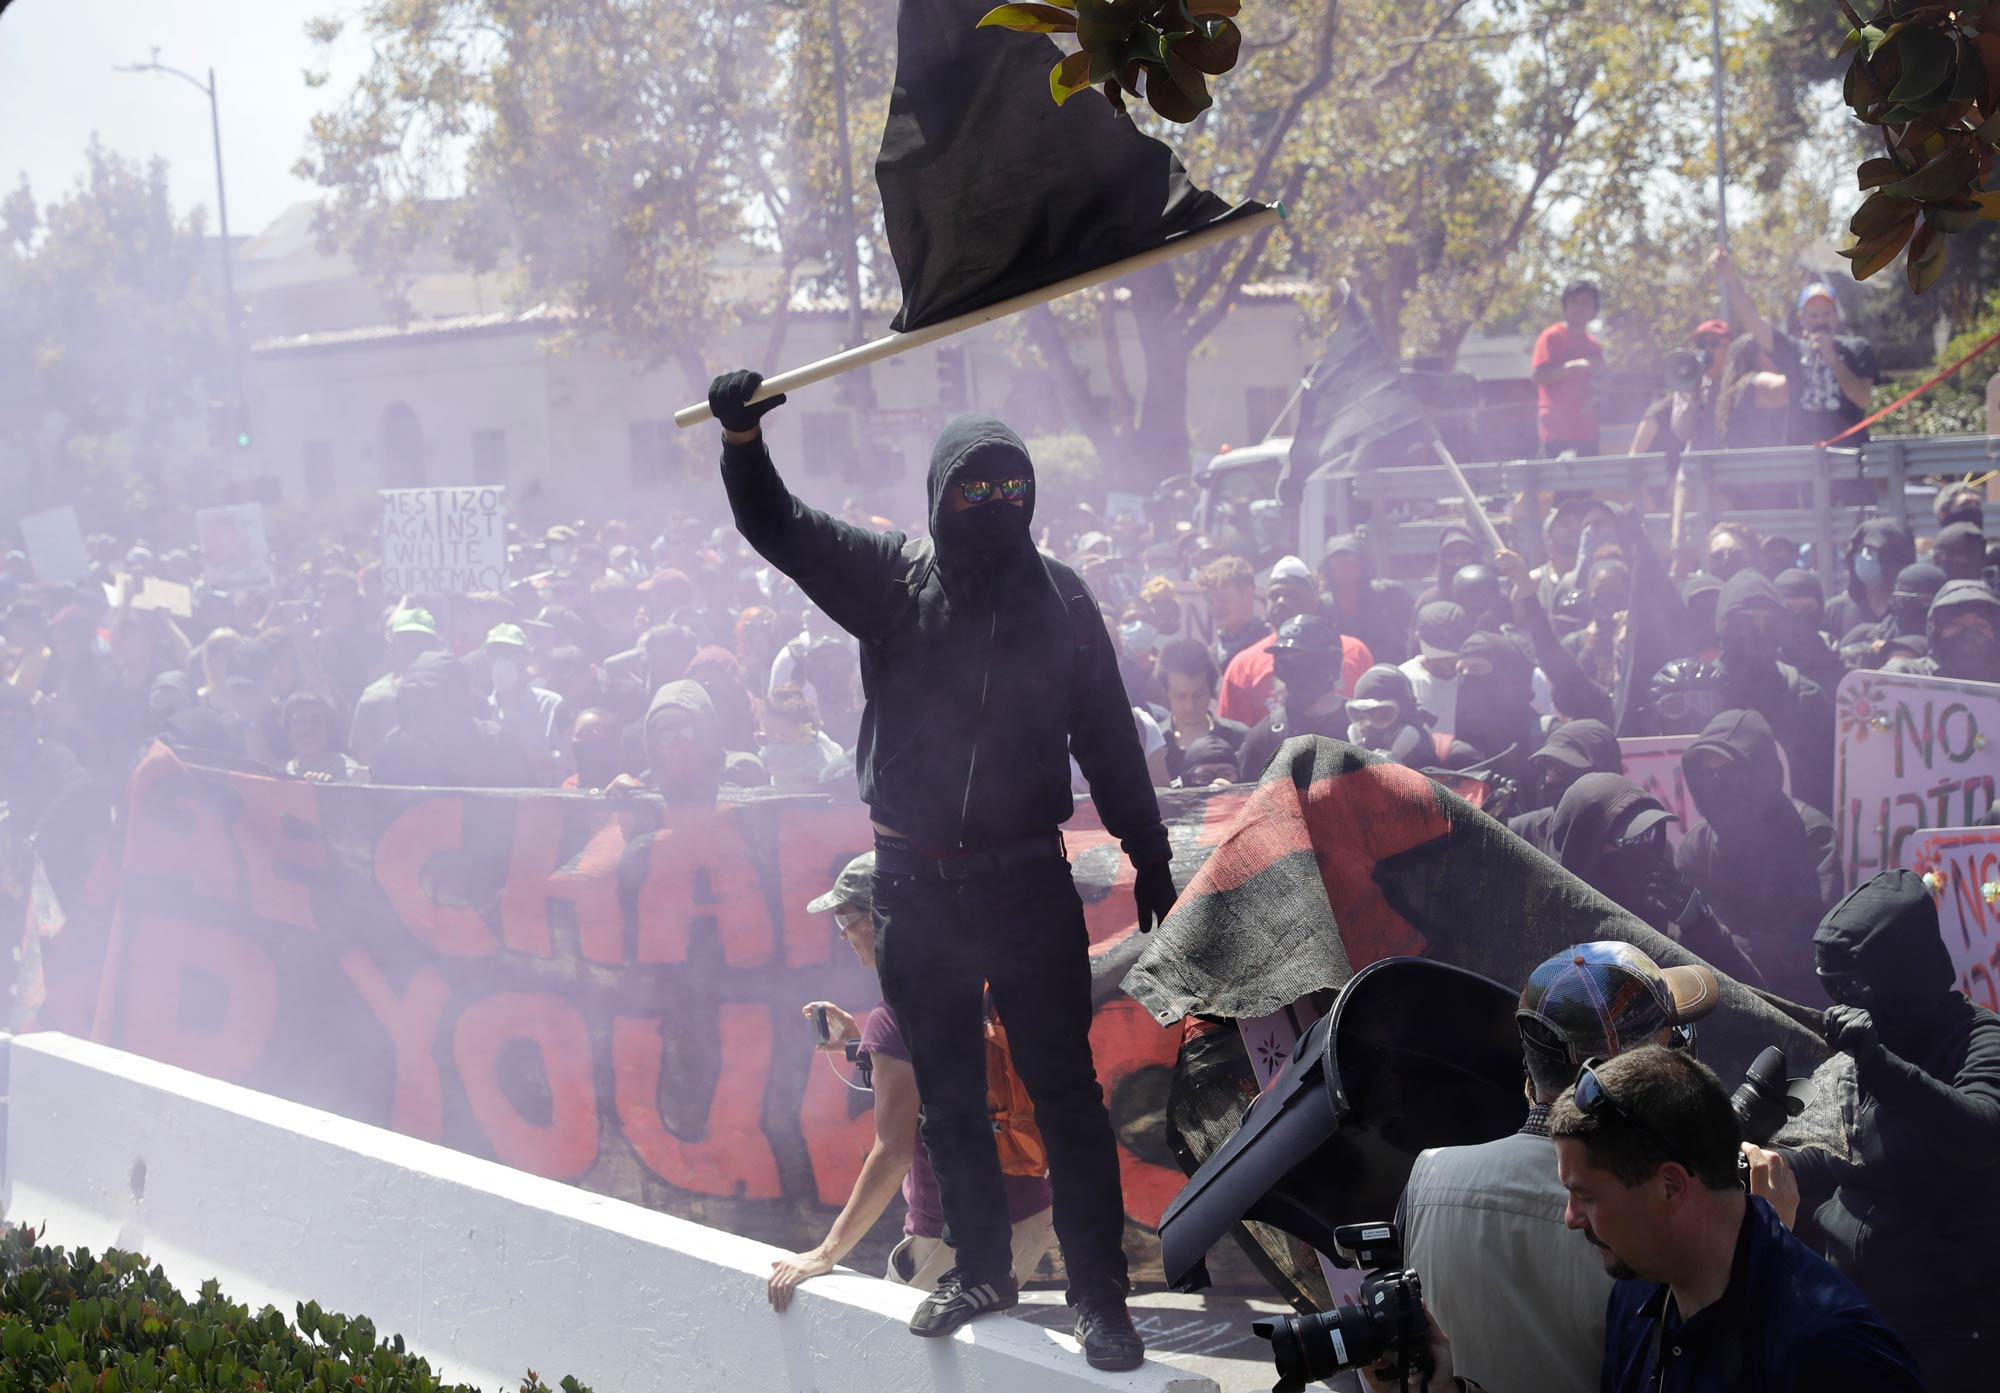 Berkeley antifascist demonstrator